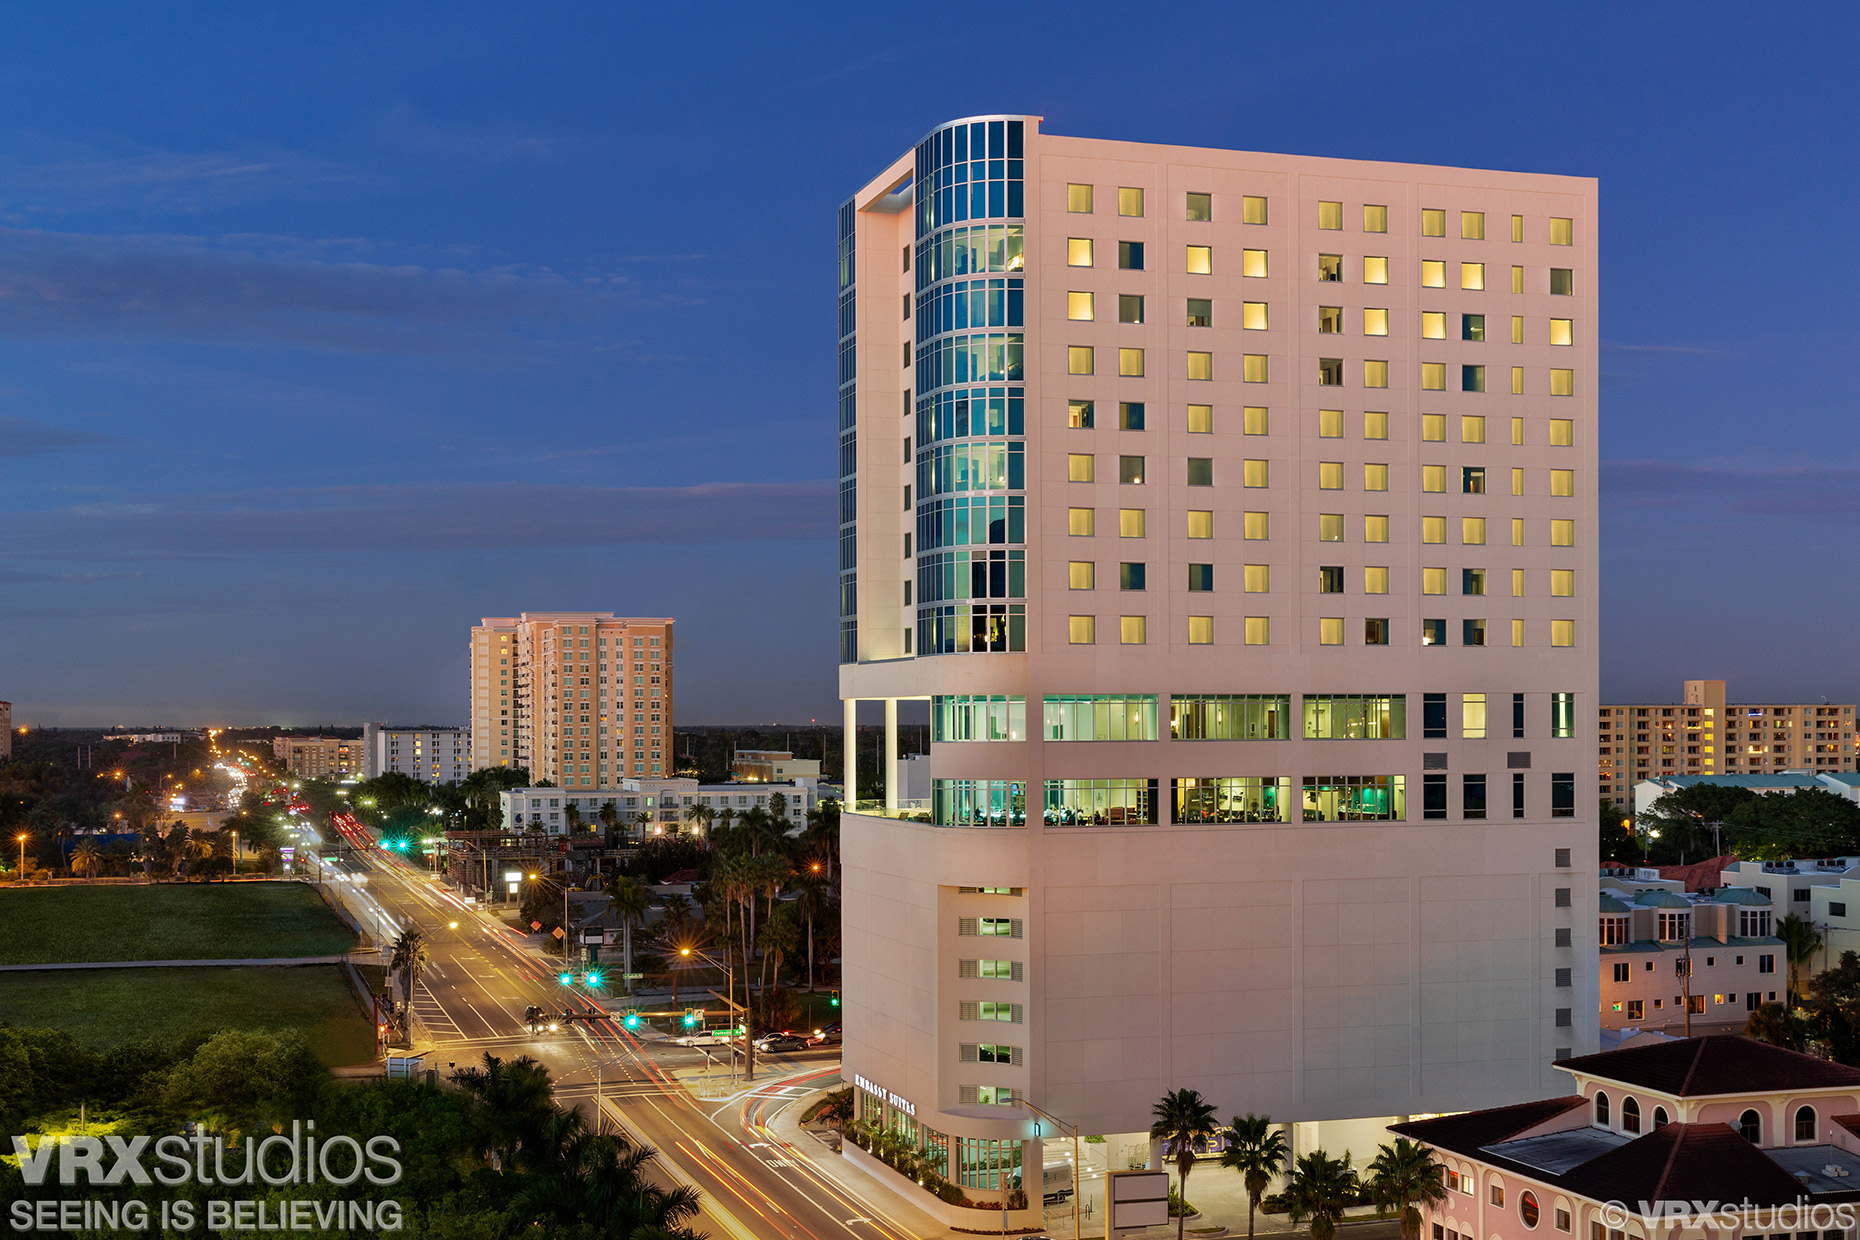 Austin Texas Architectural Photographer  - Elevated twilight view of the Embassy Suites by Hilton located in Sarasota, FL